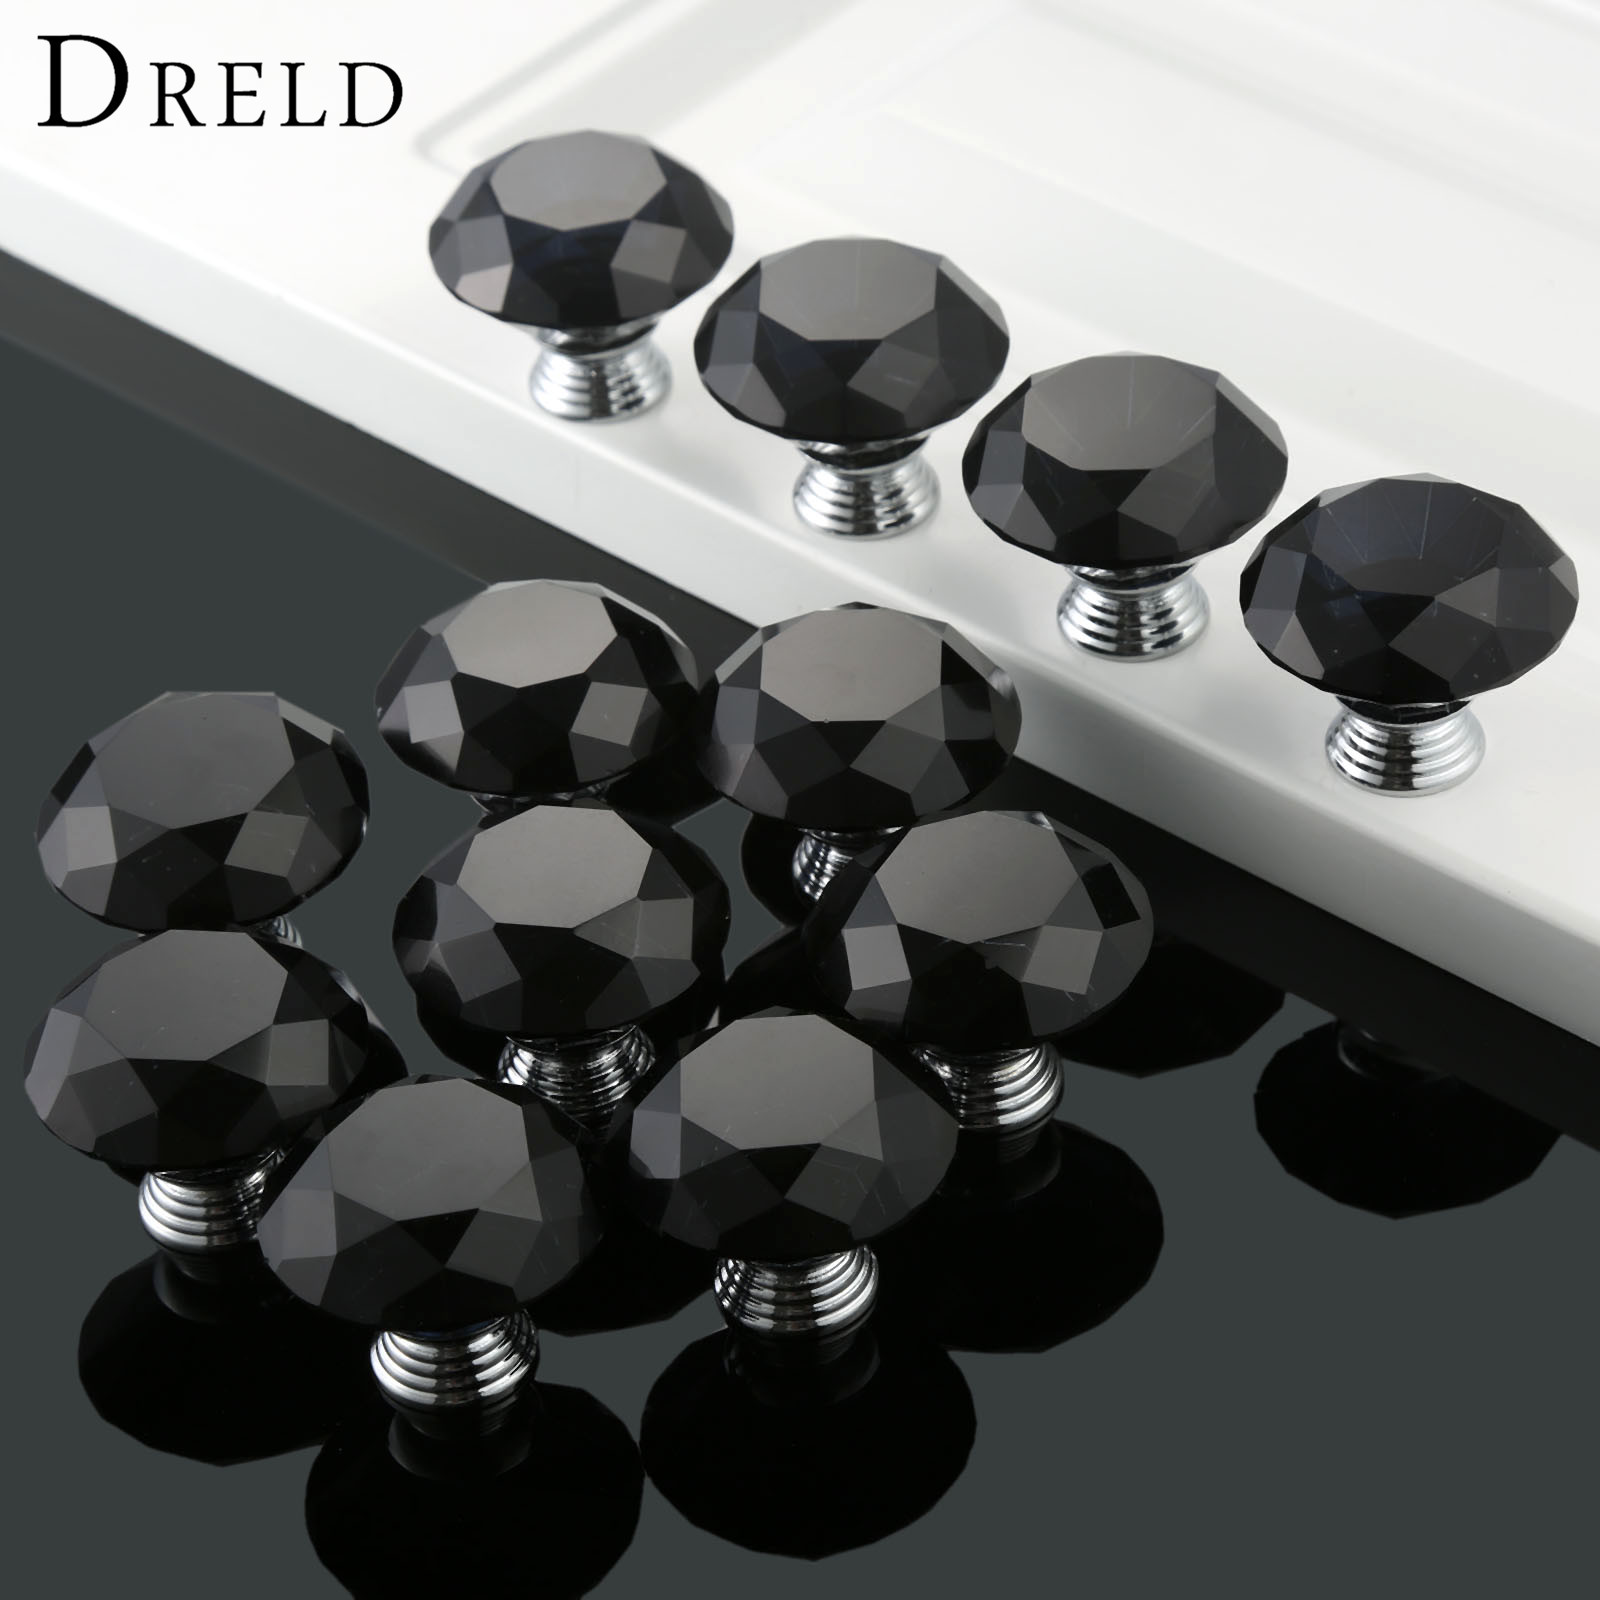 DRELD 12Pcs 40mm Black Diamond Shape Crystal Glass Kitchen Door Drawer Wardrobe Hardware Cabinet Knobs and Handles for Furniture 10 pcs 30mm diamond shape crystal glass drawer cabinet knobs and pull handles kitchen door wardrobe hardware accessories